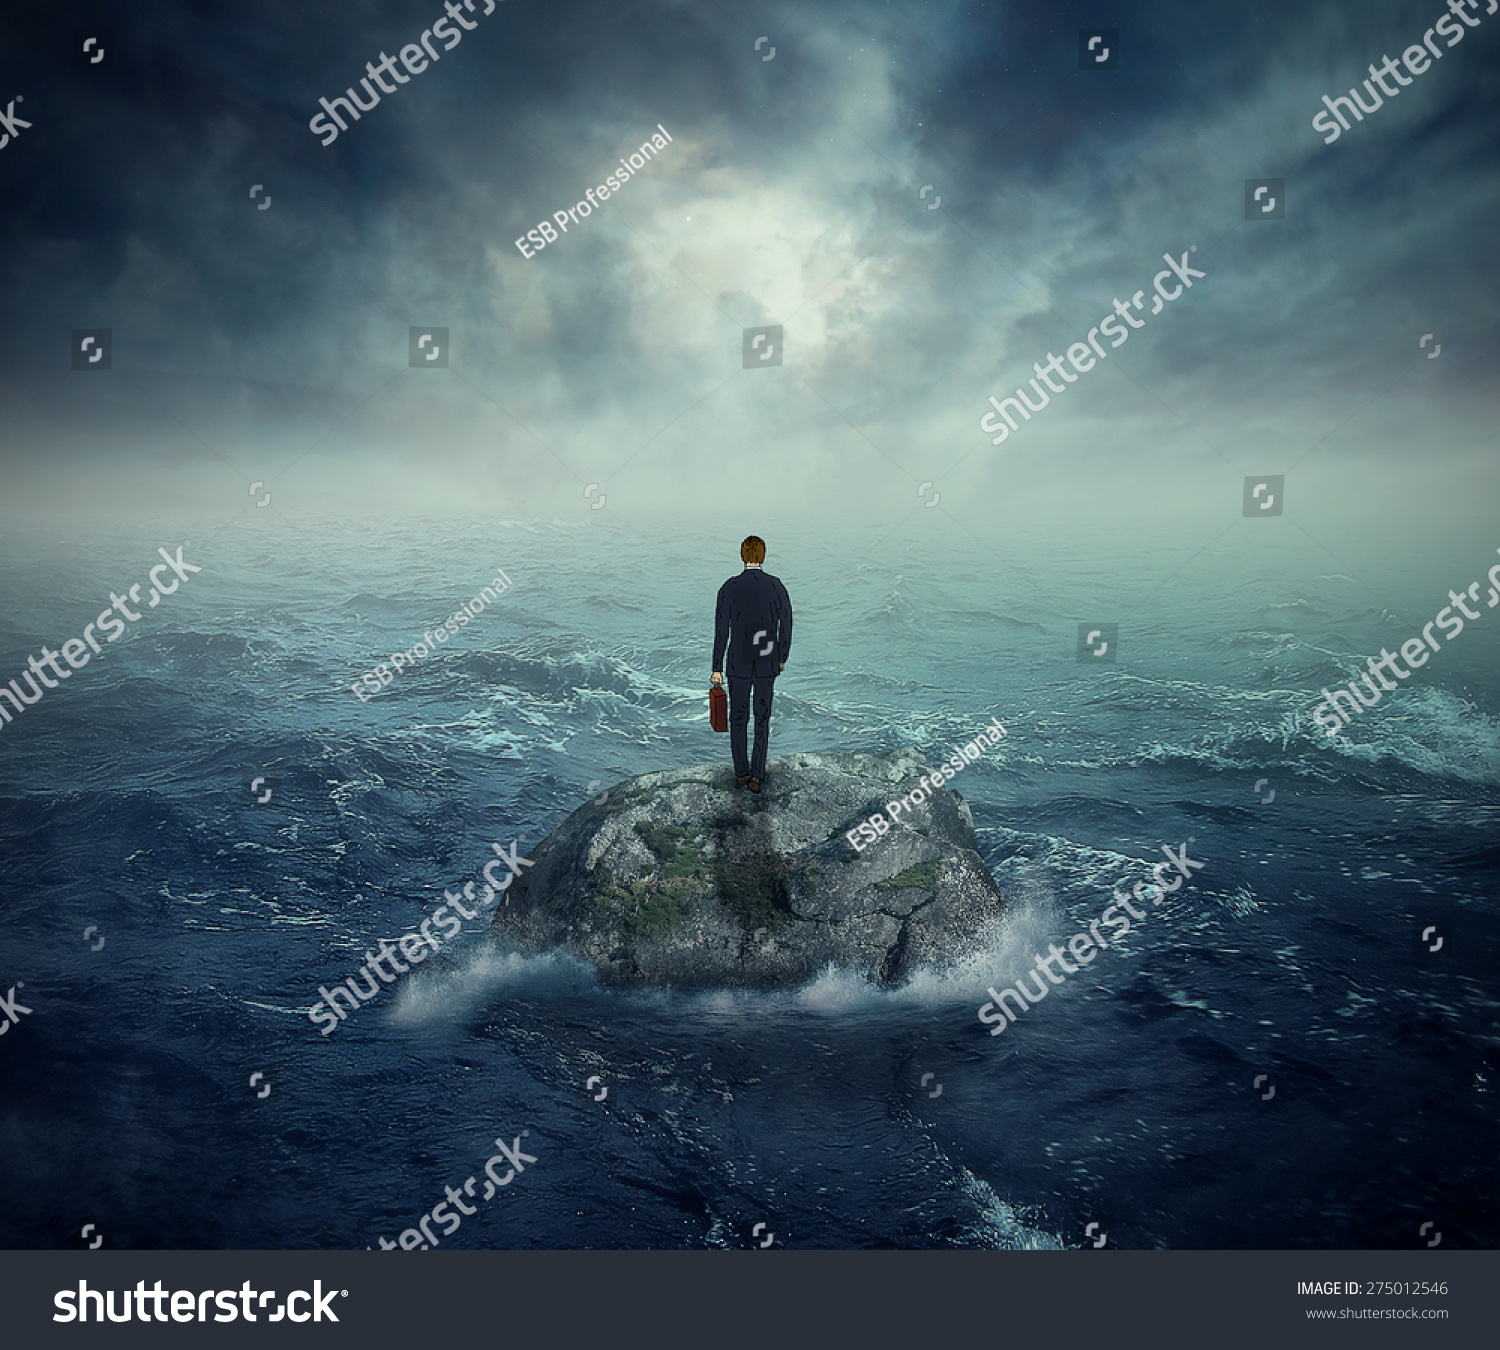 Failure crisis concept and lost business career education opportunity Lonely young man on a rock cliff island surrounded by an ocean storm waves